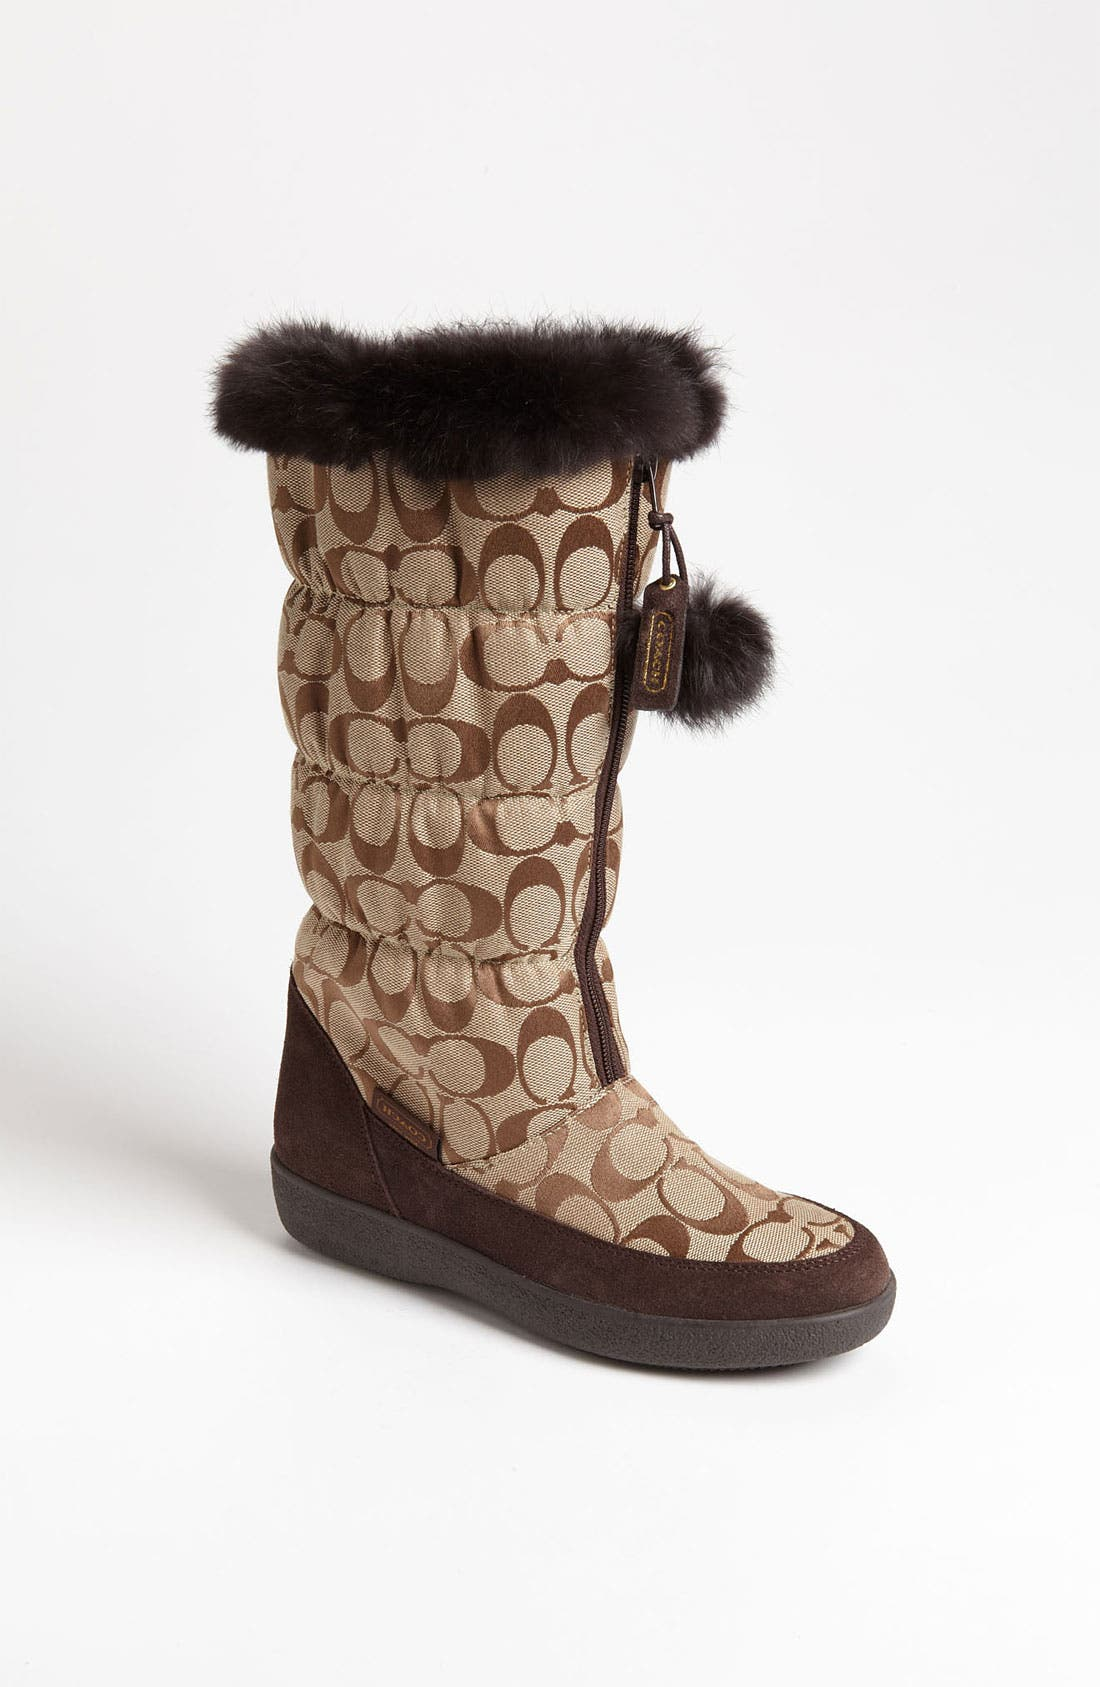 Alternate Image 1 Selected - COACH 'Theona' Snow Boot